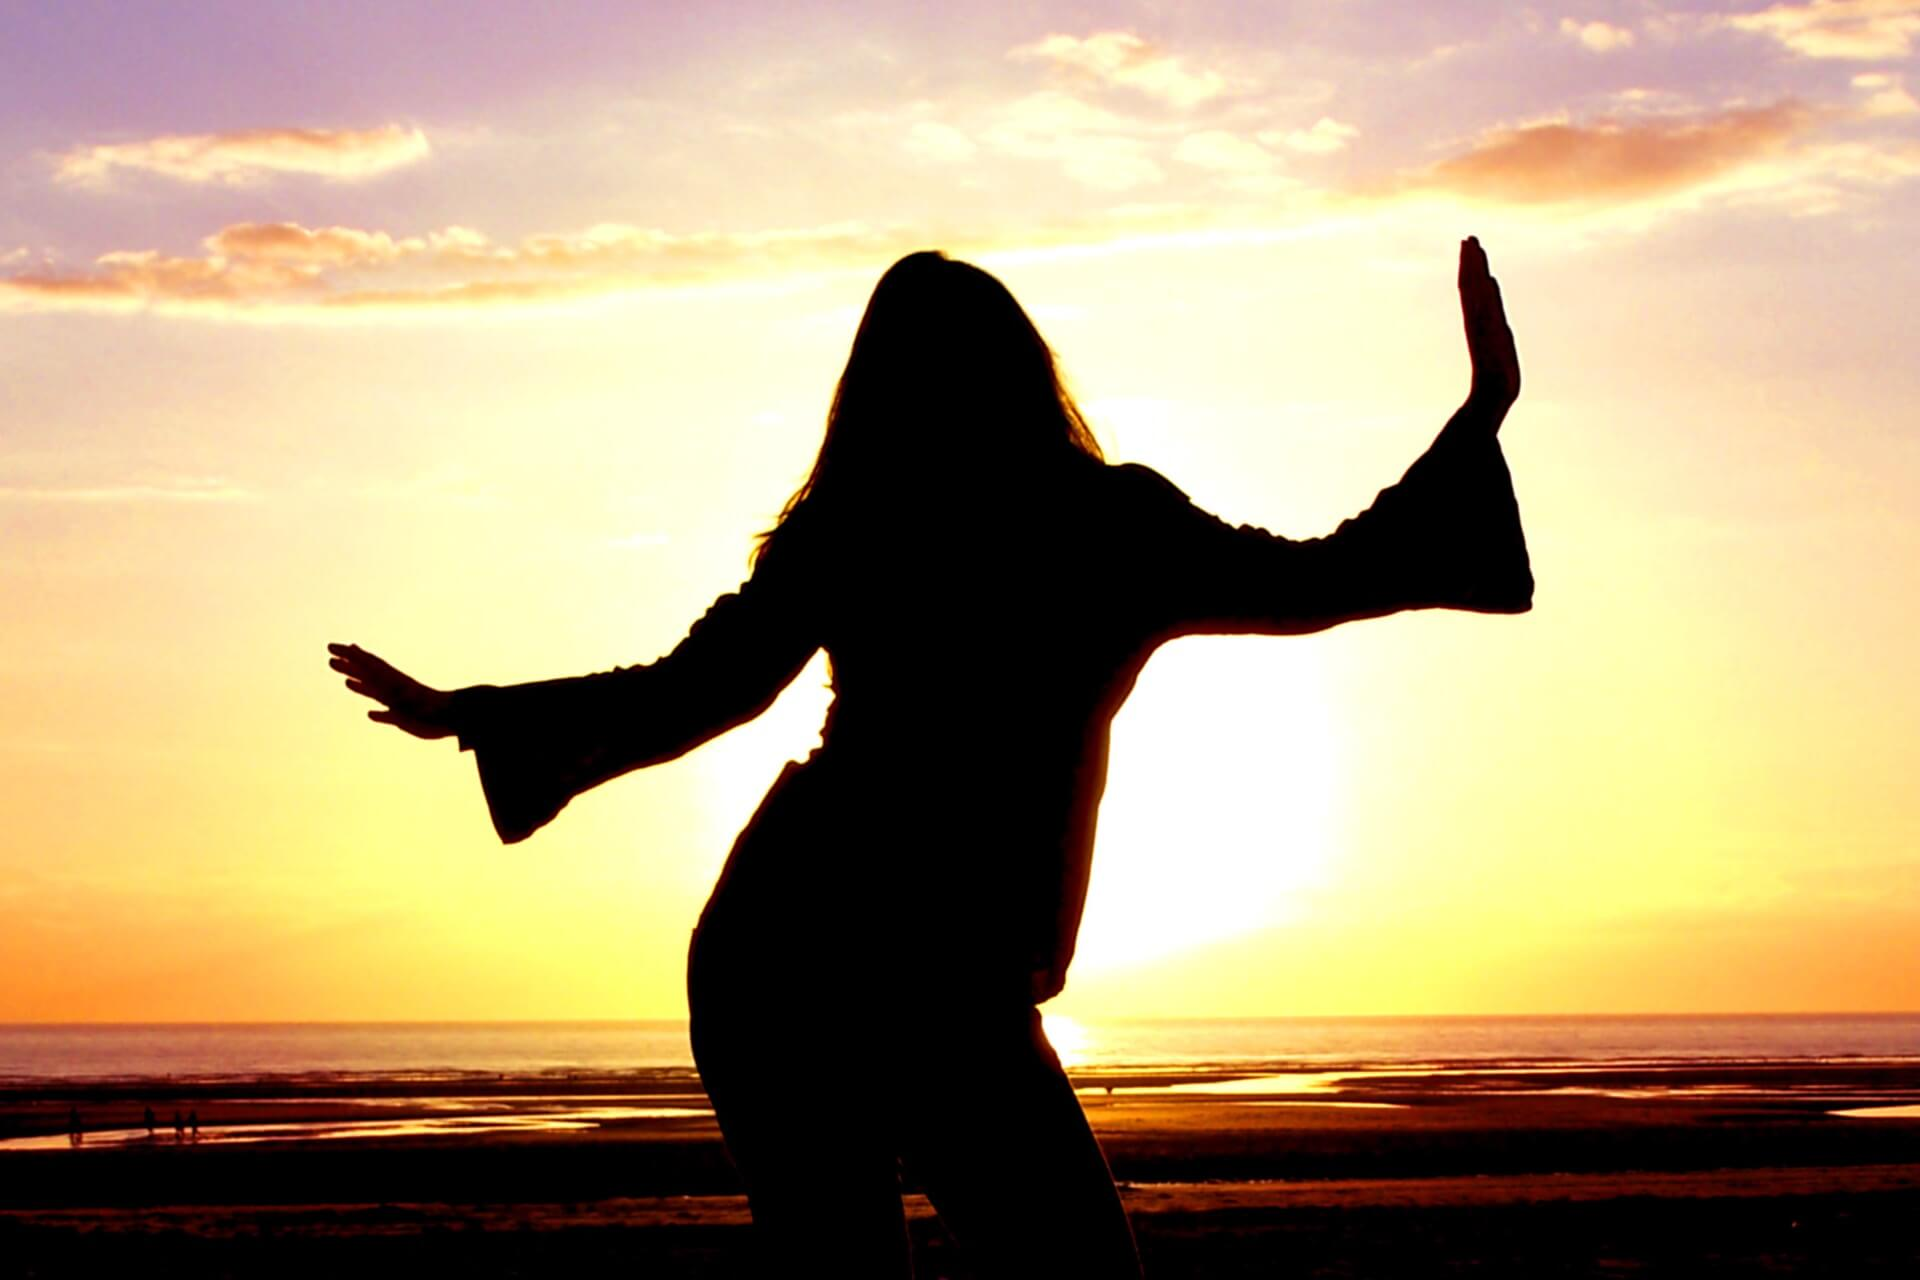 Silhouette of a woman dancing in front of a sunset